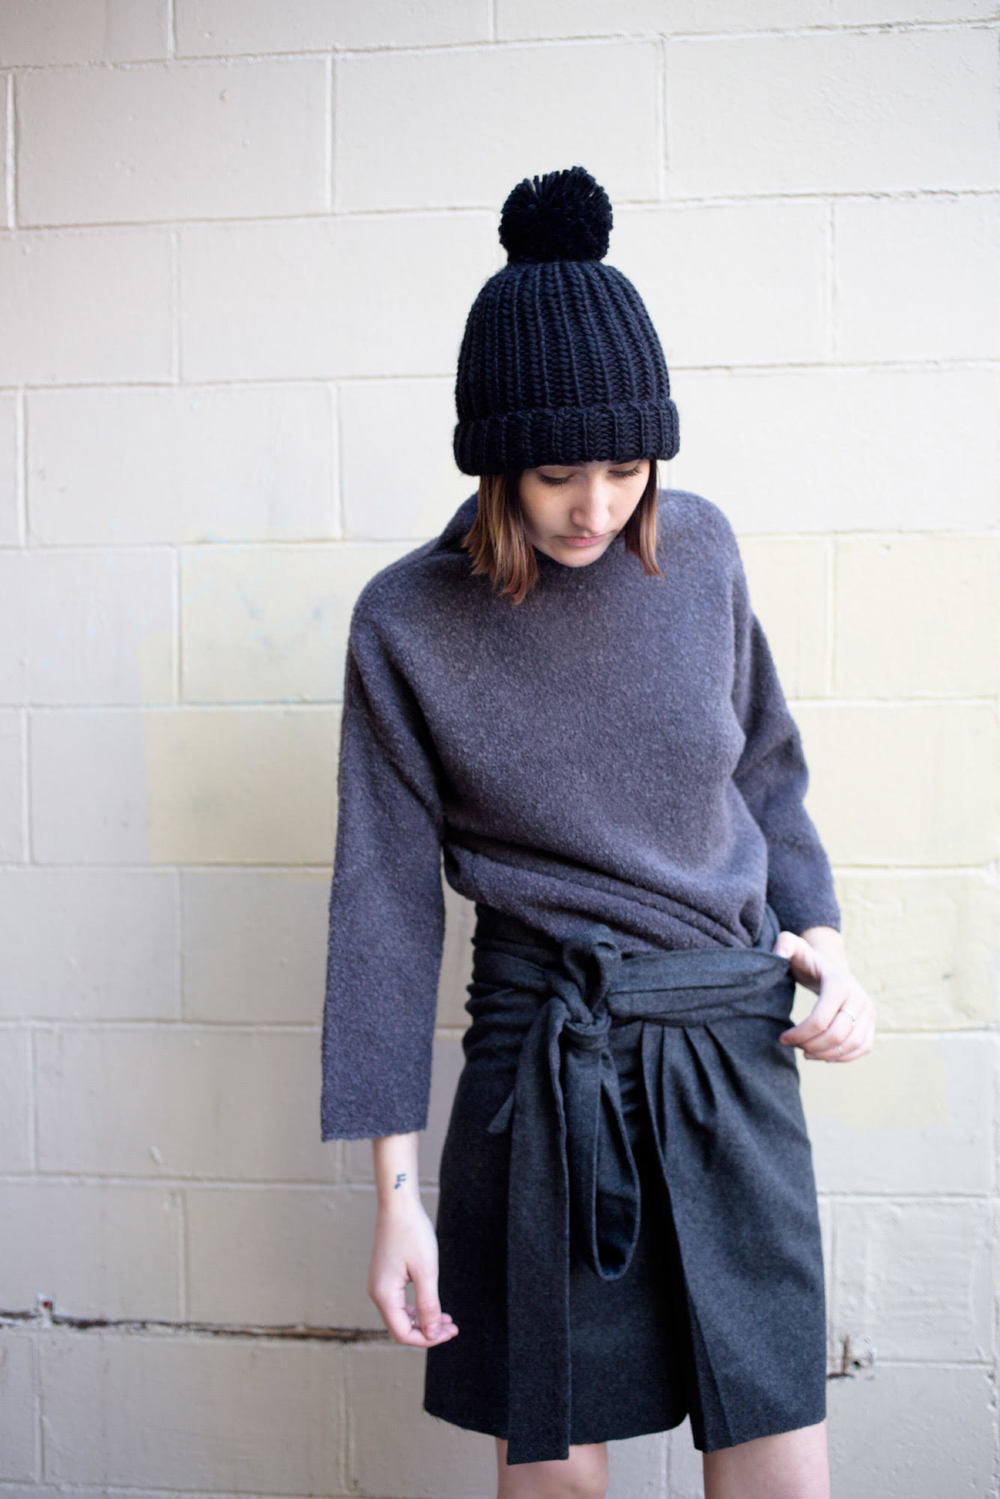 Wearing Achro  High Neck Charcoal Sweater ,  Achro Wool Wrap Skirt,  and Pipe and Row Staples Oversized Pom Beanie.